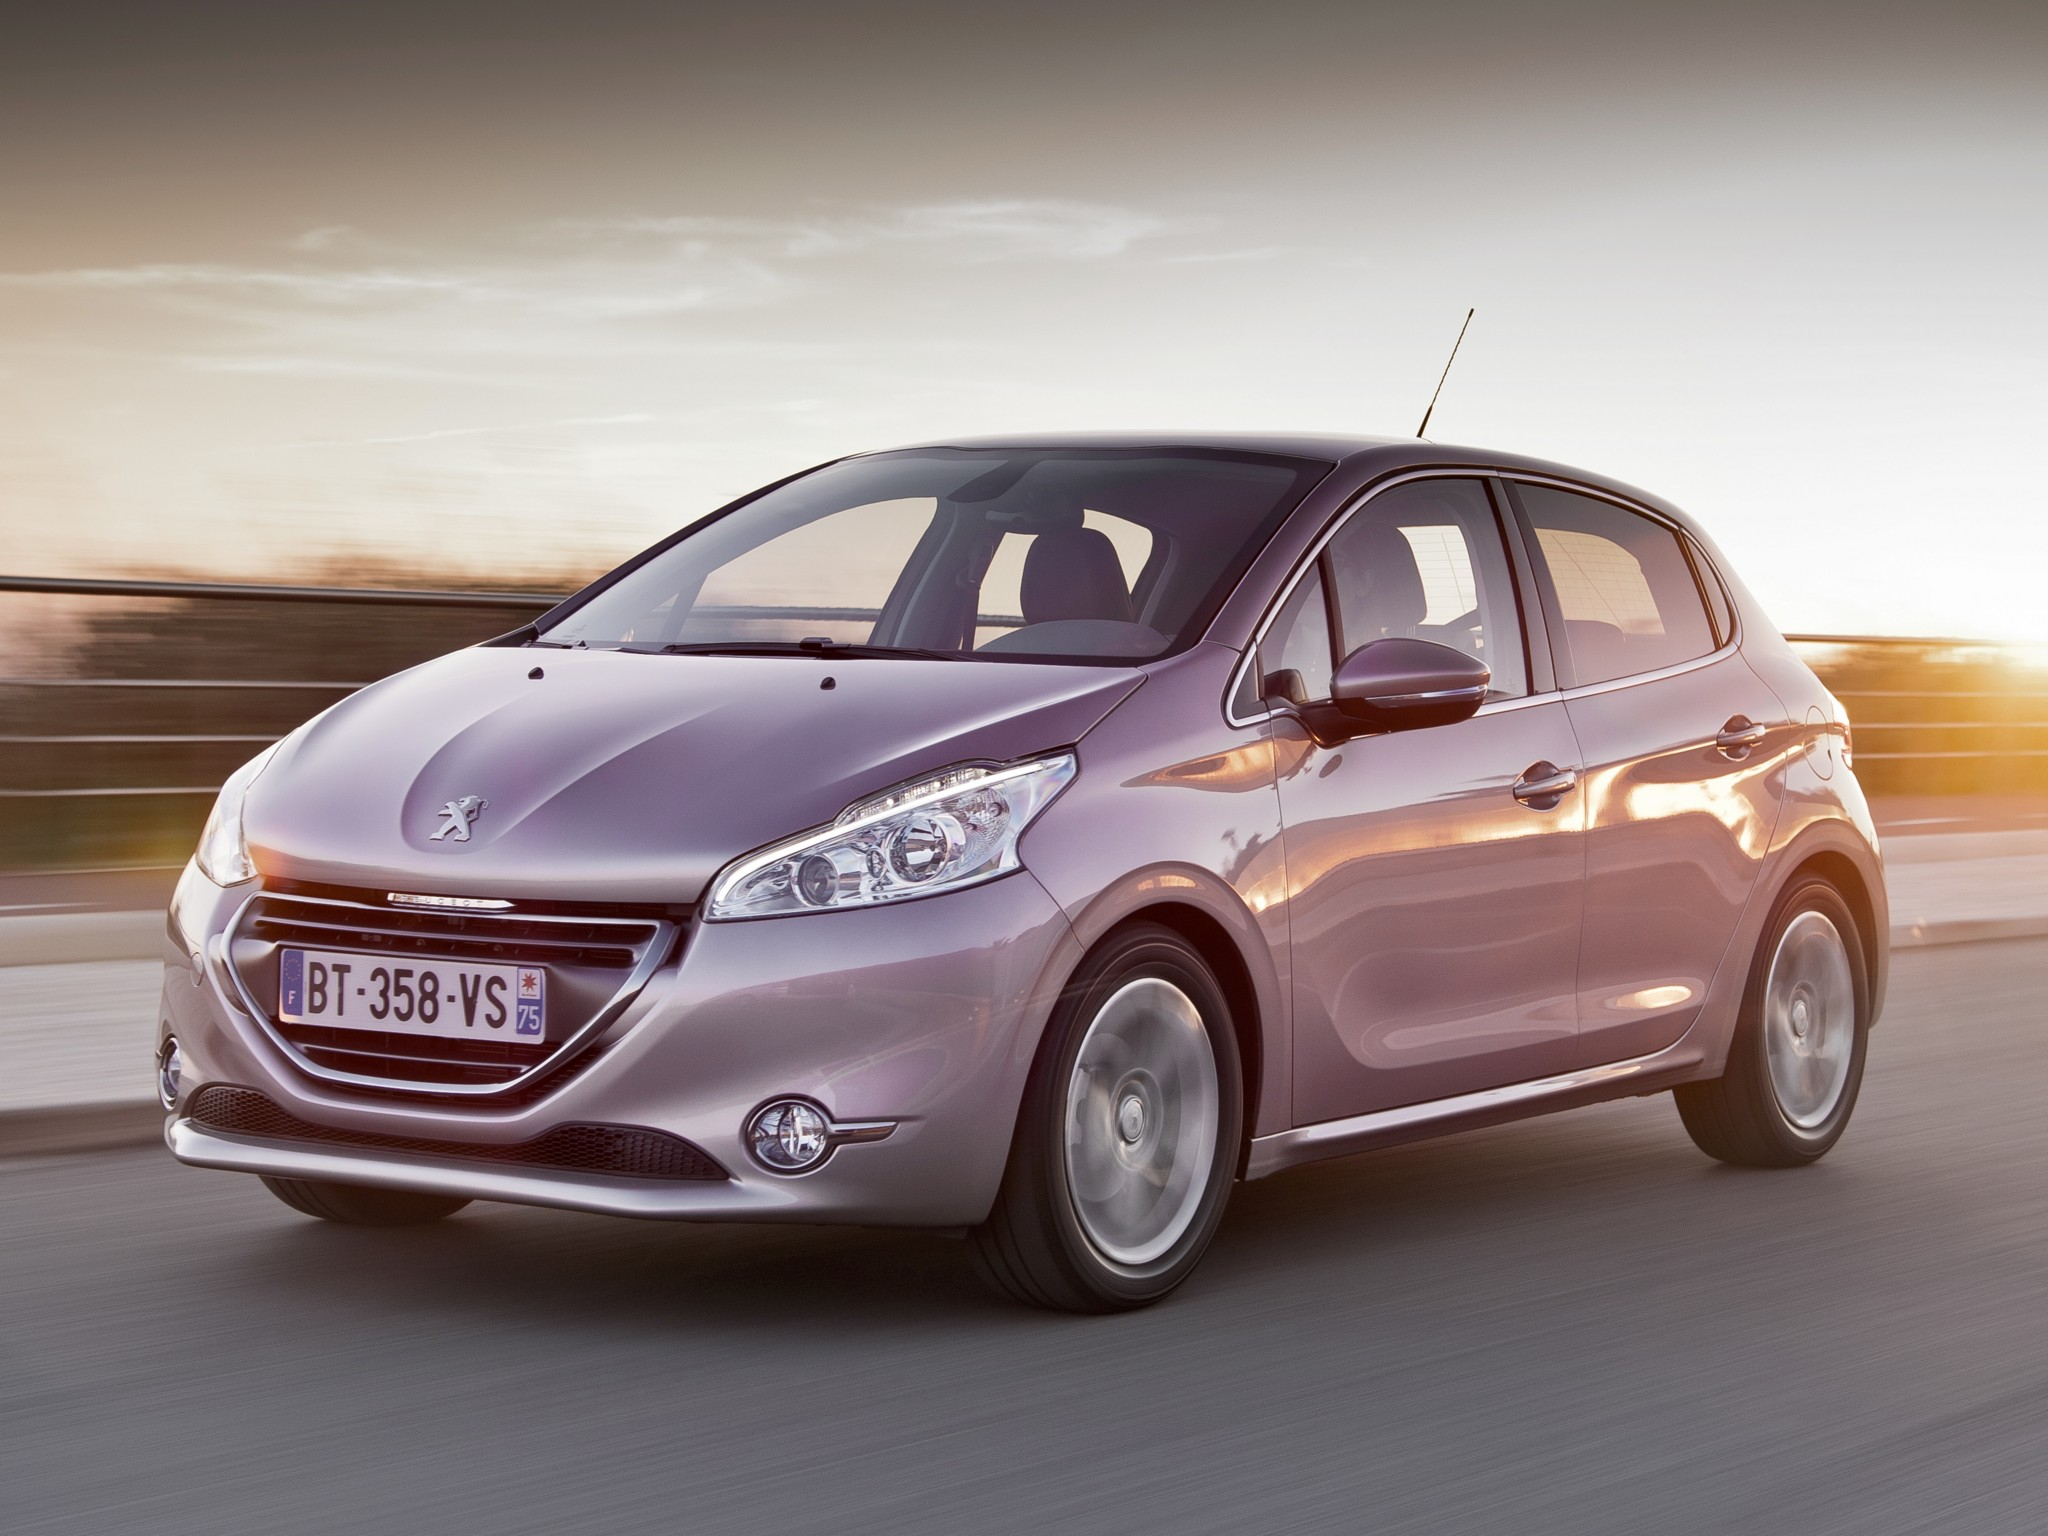 PEUGEOT 208 5 Doors Specs & Photos